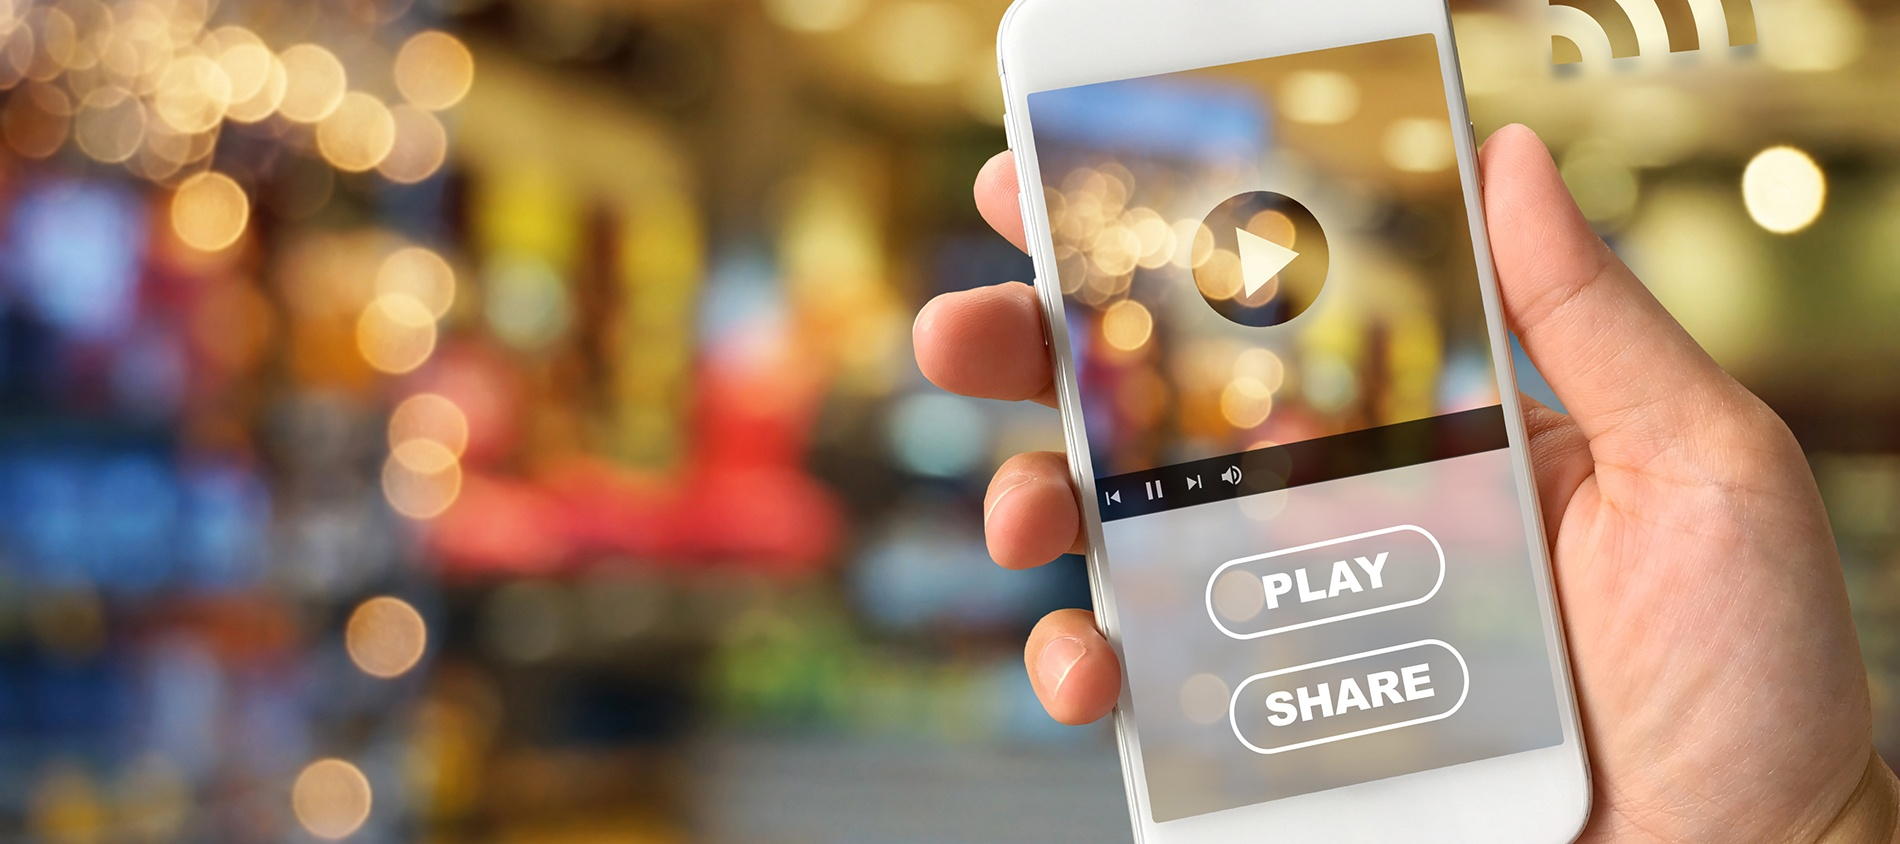 Video en Marketing: 10 razones por las que te URGE usar videos en tu estrategia.